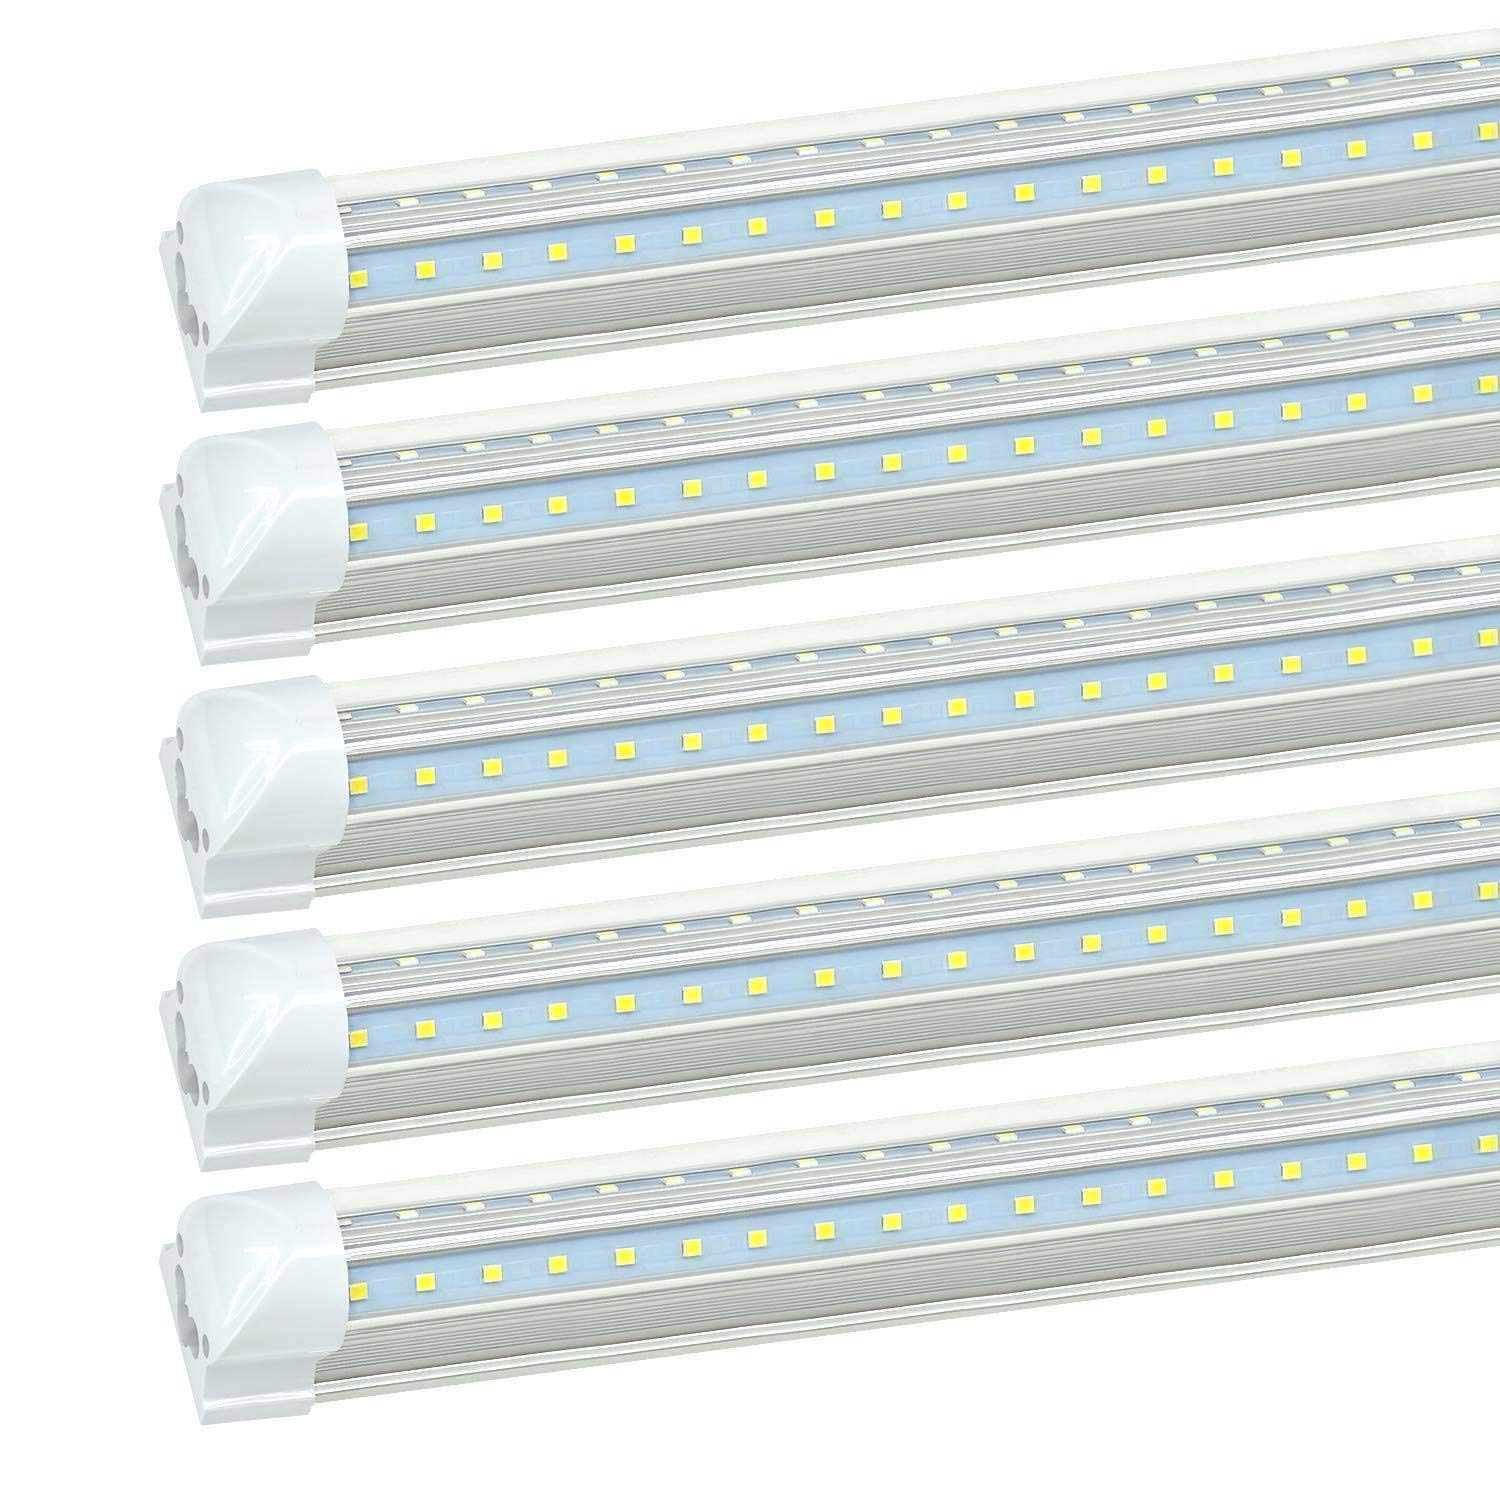 8FT LED Shop Light Fixture - 72W 7200LM, 5000K Daylight, JESLED T8 Integrated V Shape Strip Tube Lights, High Output Bulbs for Garage Warehouse Workshop, with On/Off Switch, Plug and Play (20-Pack)